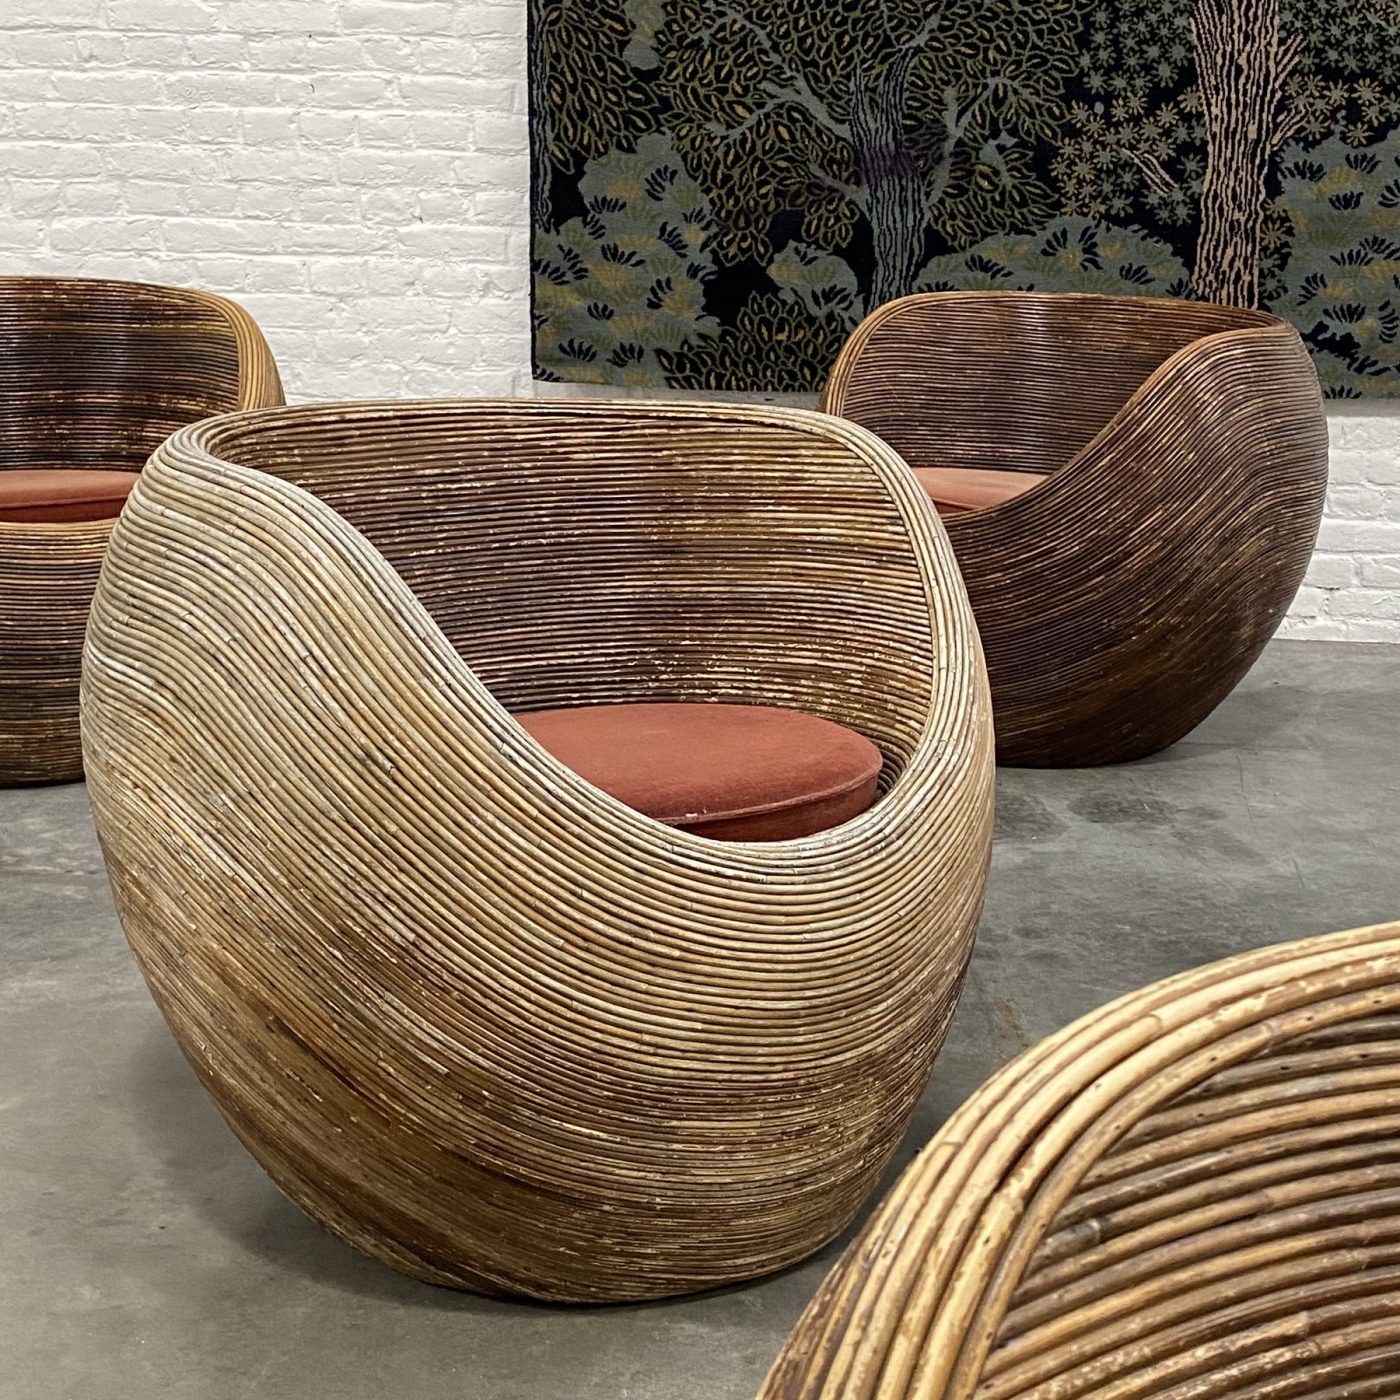 objet-vagabond-bamboo-chairs0001